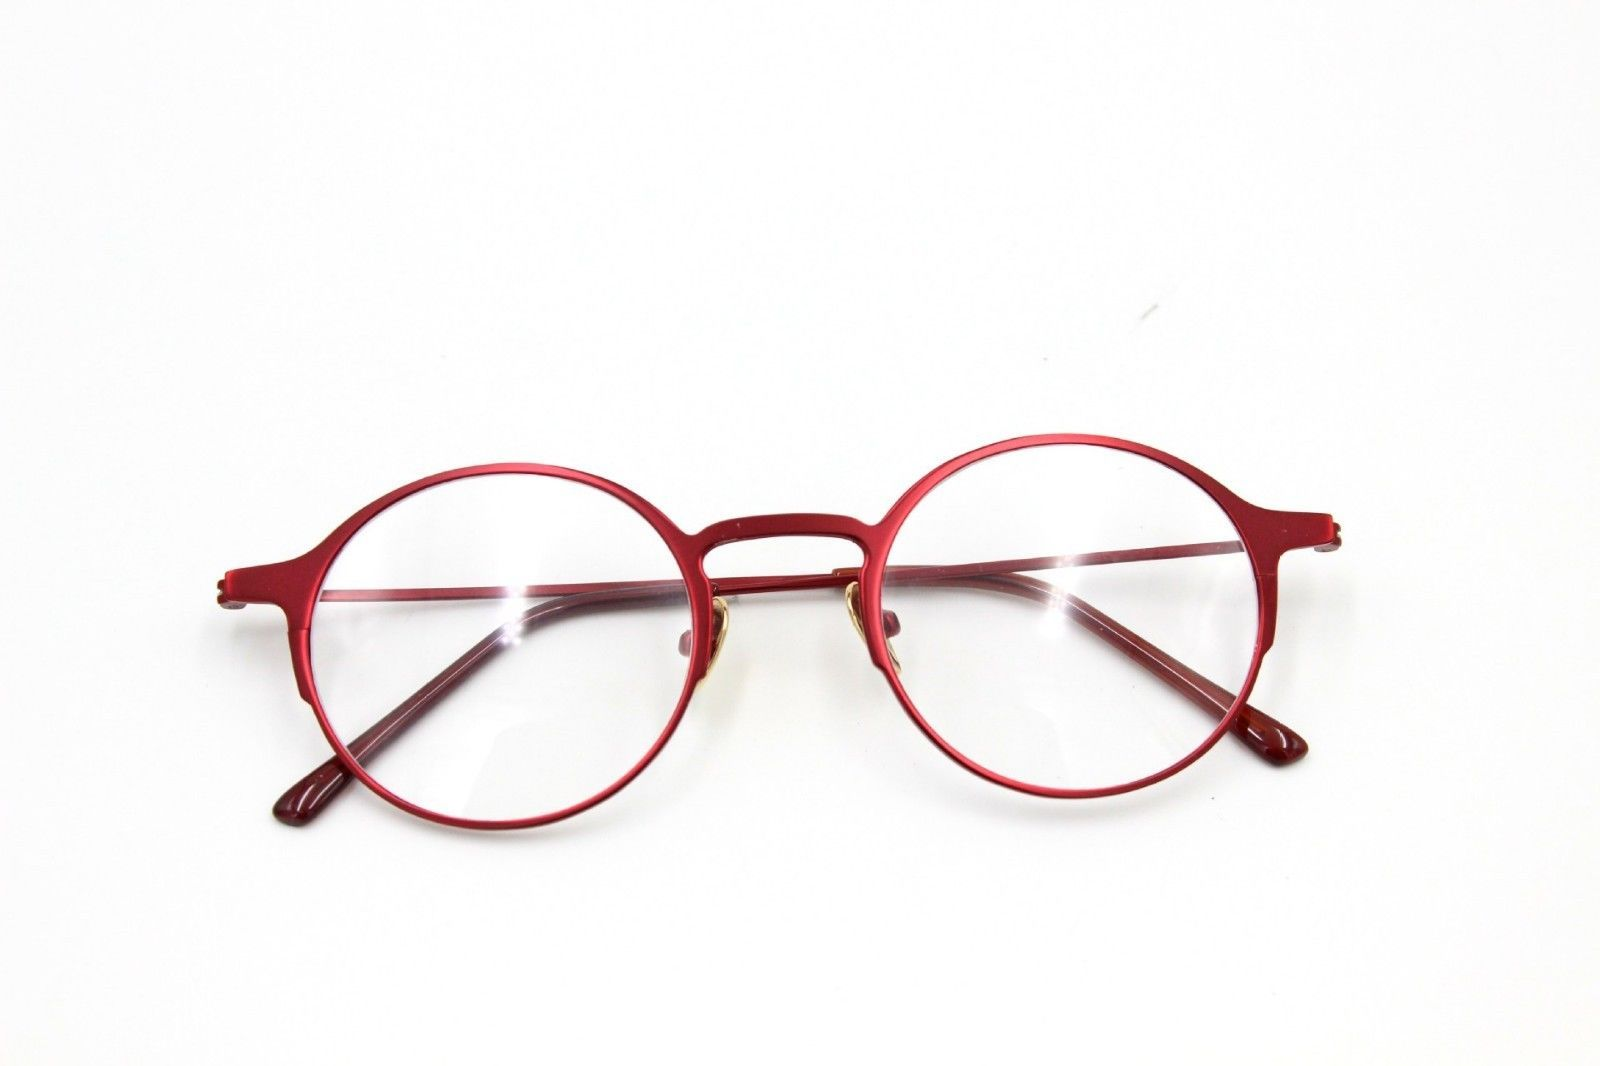 68ce243e84dd NEW Retro Men Woman Rx Glasses Optical Eyeglasses Frame Spectacles Eyewear